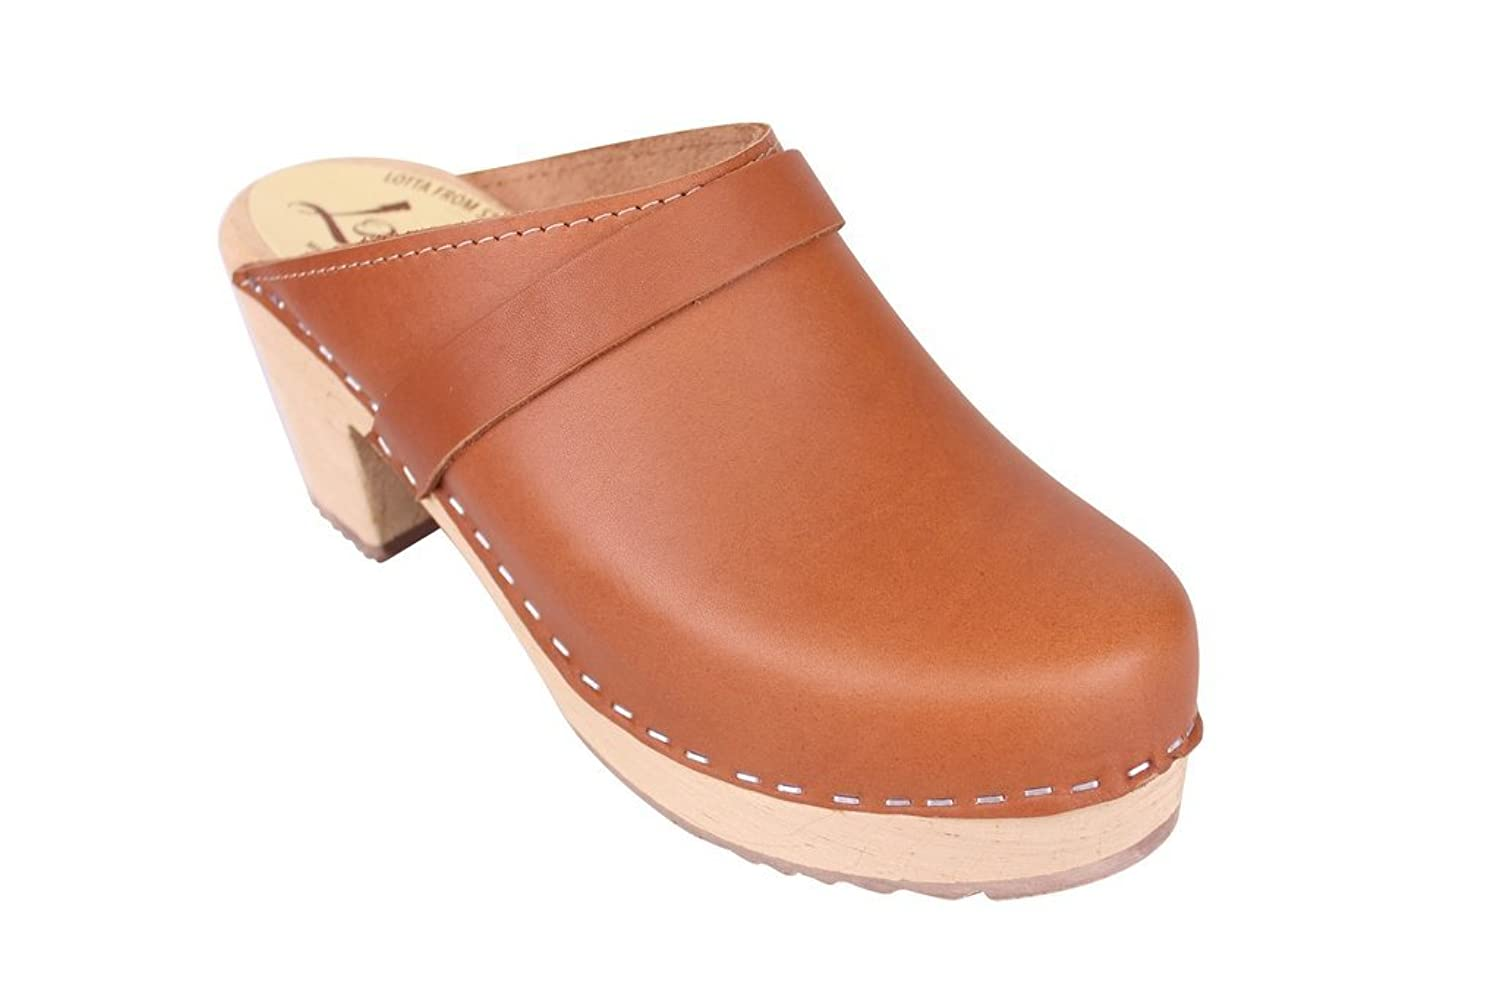 Lotta From Stockholm Classic High Heel Clog in Tan